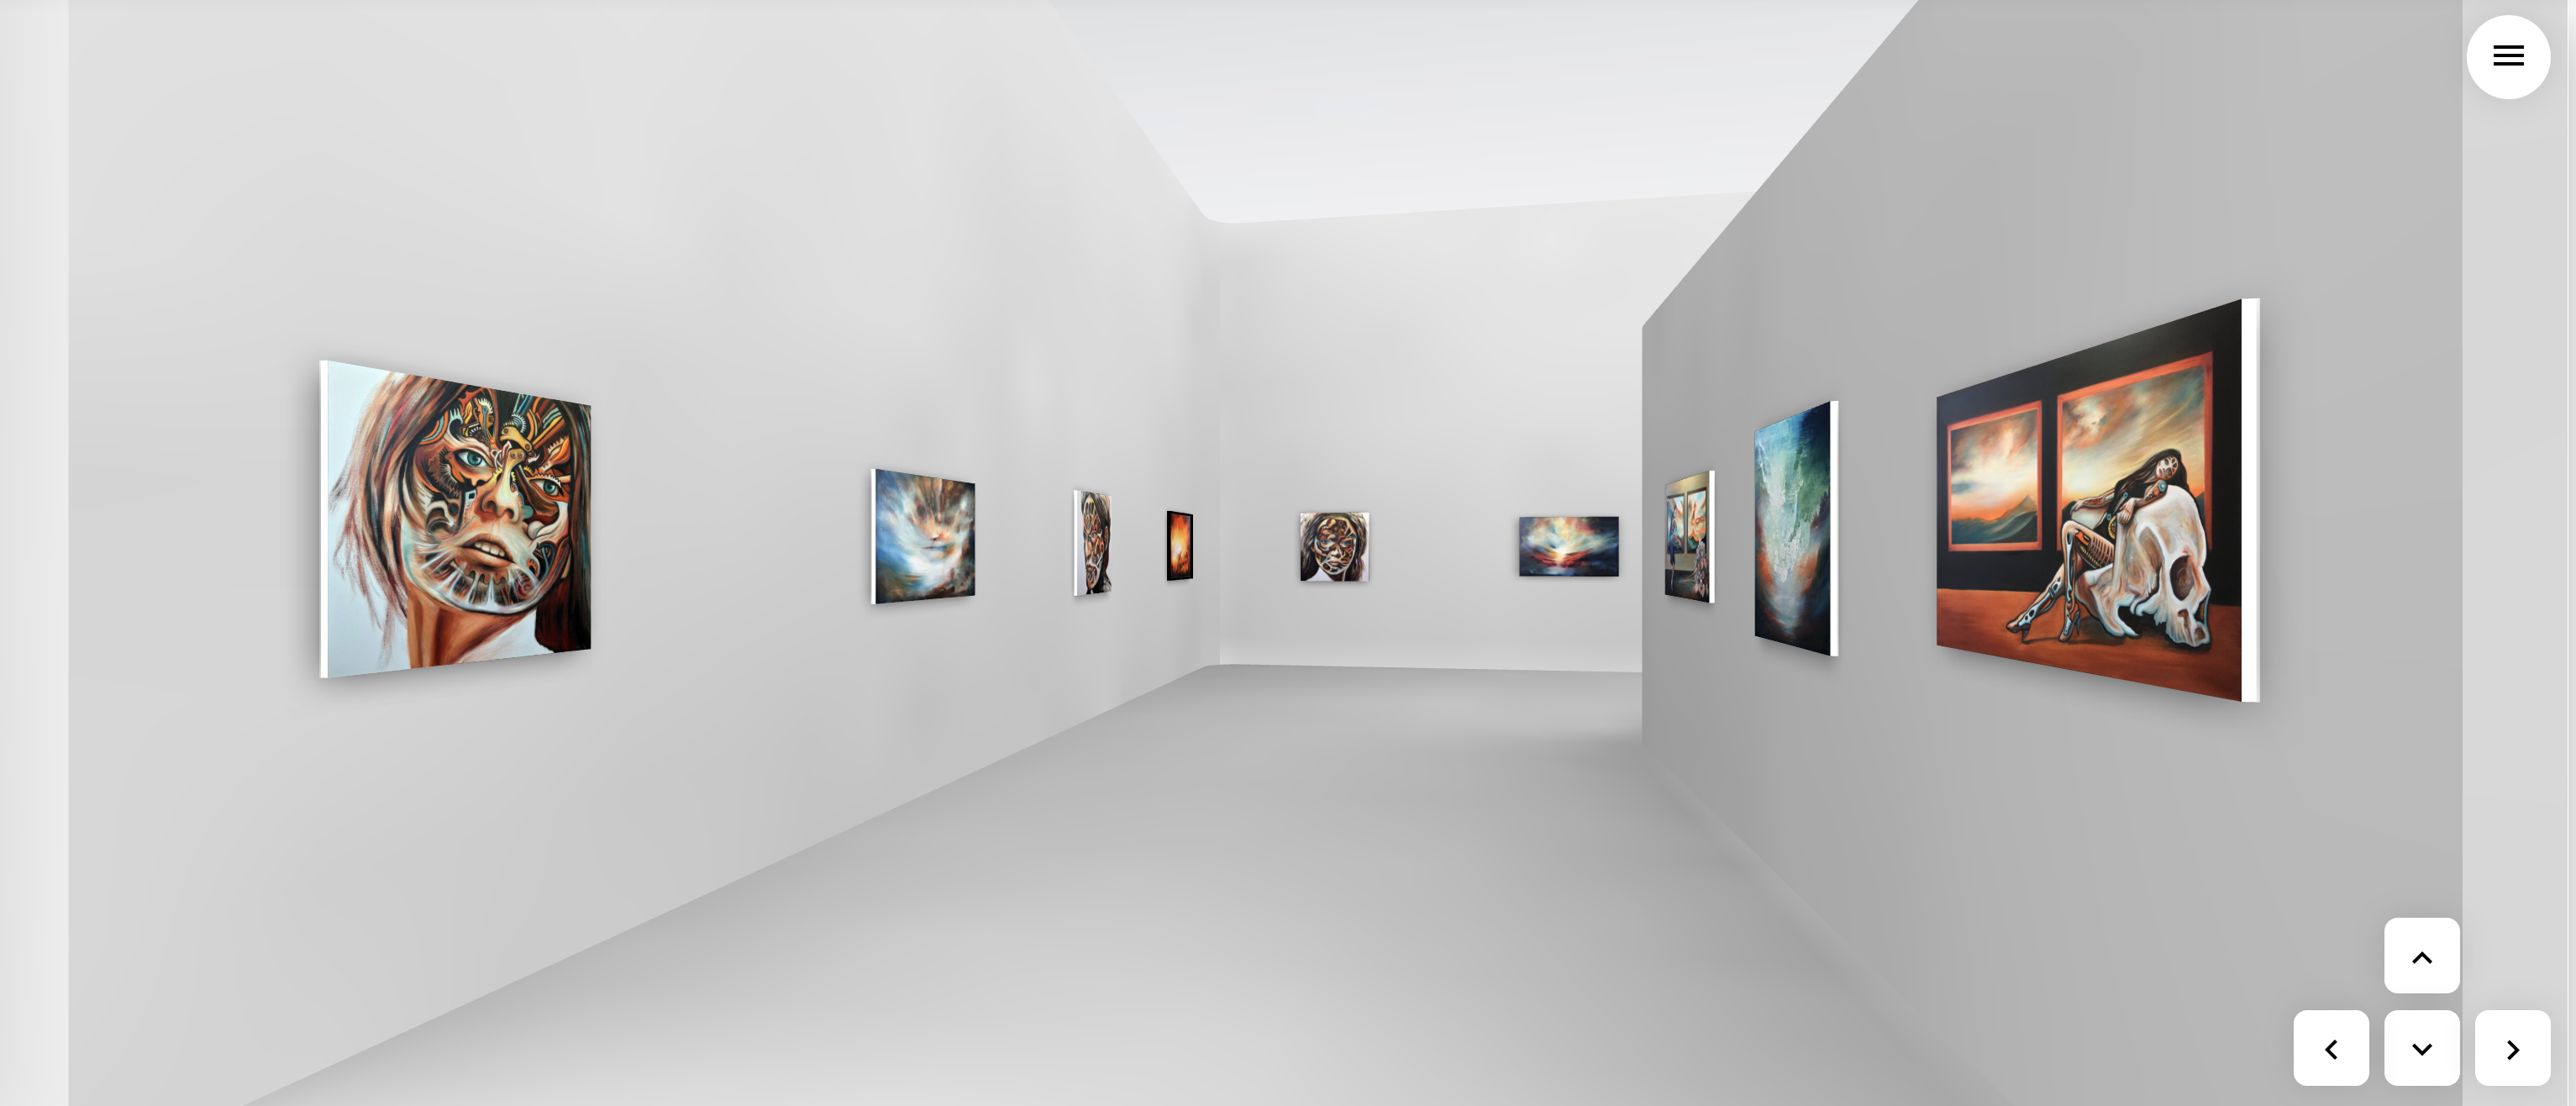 Nothing Is Real - virtual 3d Exhibition by Paul Kingsley Squire